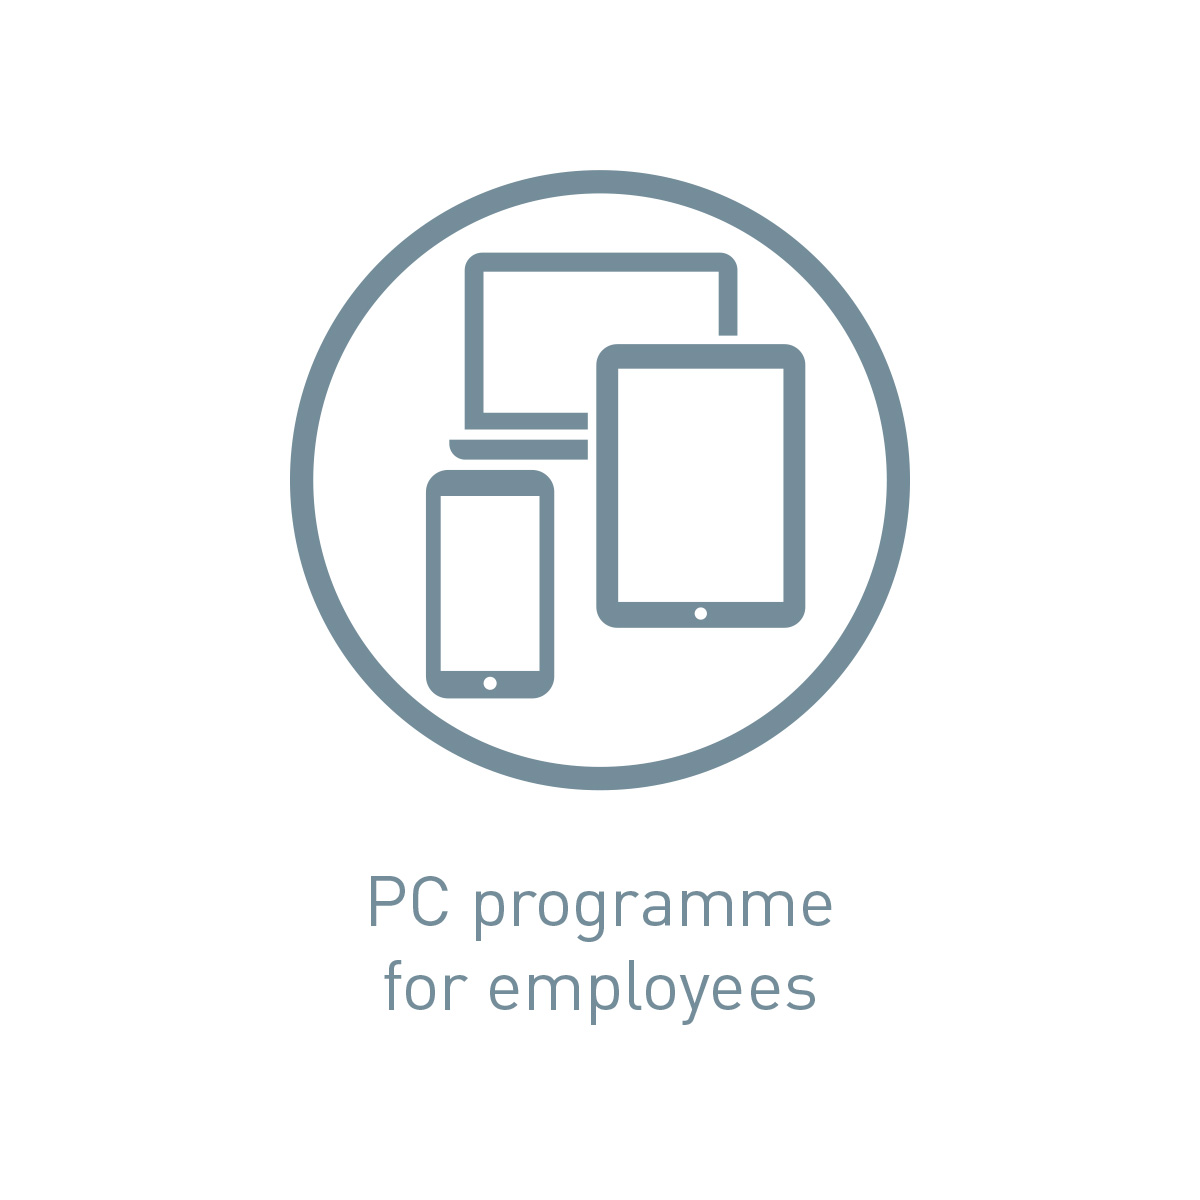 Icon PC programme for employees